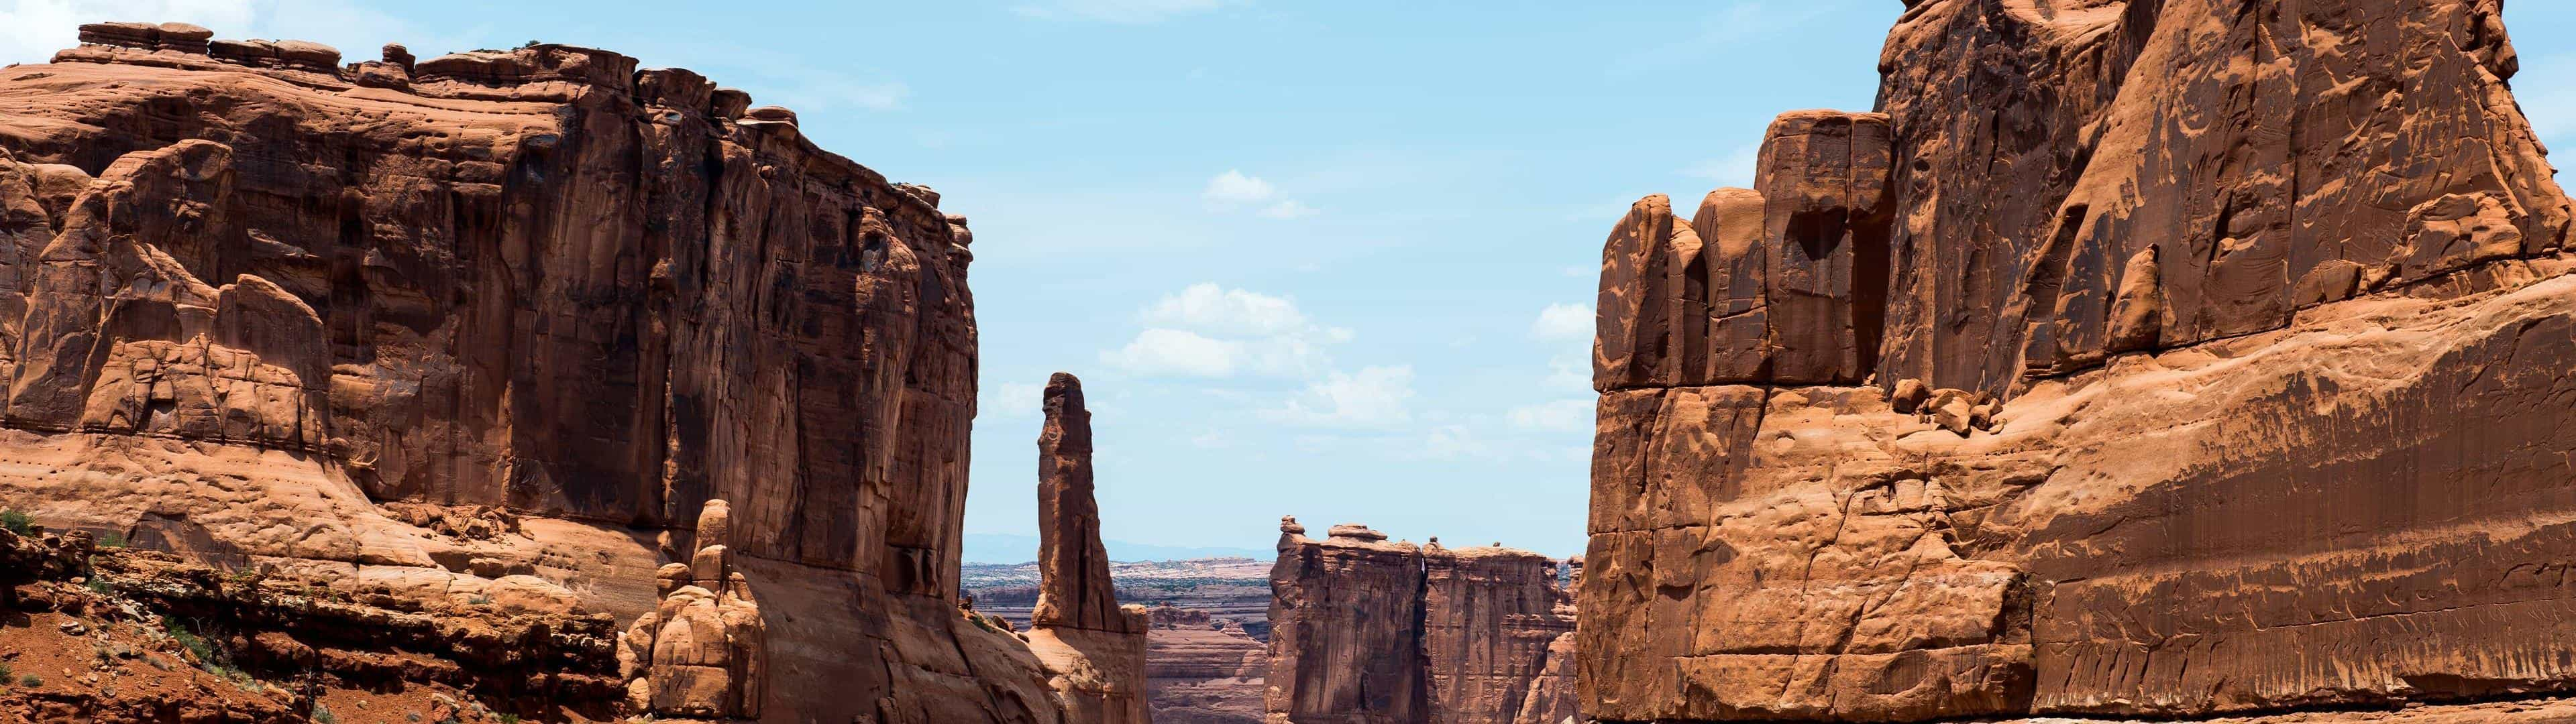 courthouse towers arches national park united states dual monitor wallpaper